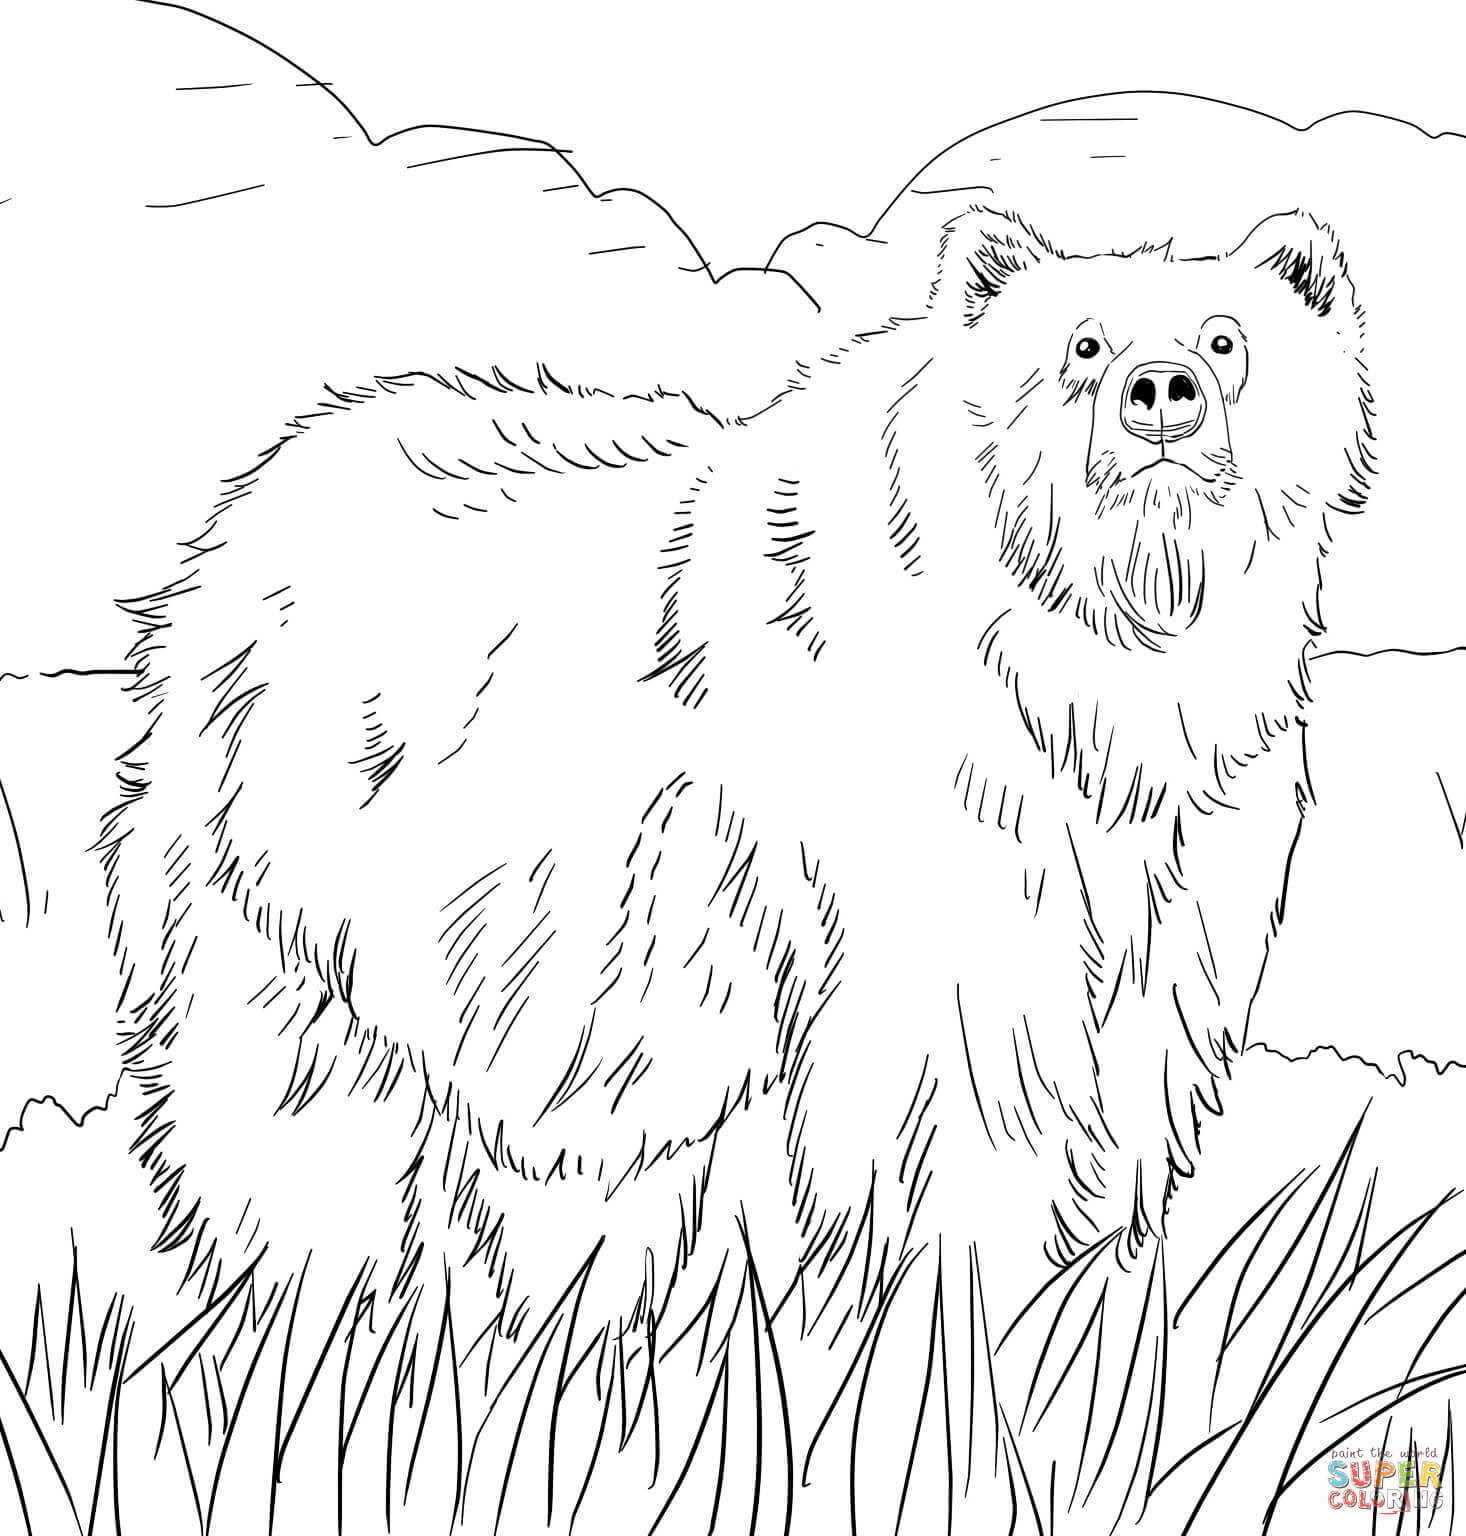 Grizzly Bear Coloring Pages For Kids  Alaskan Grizzly Bear coloring page